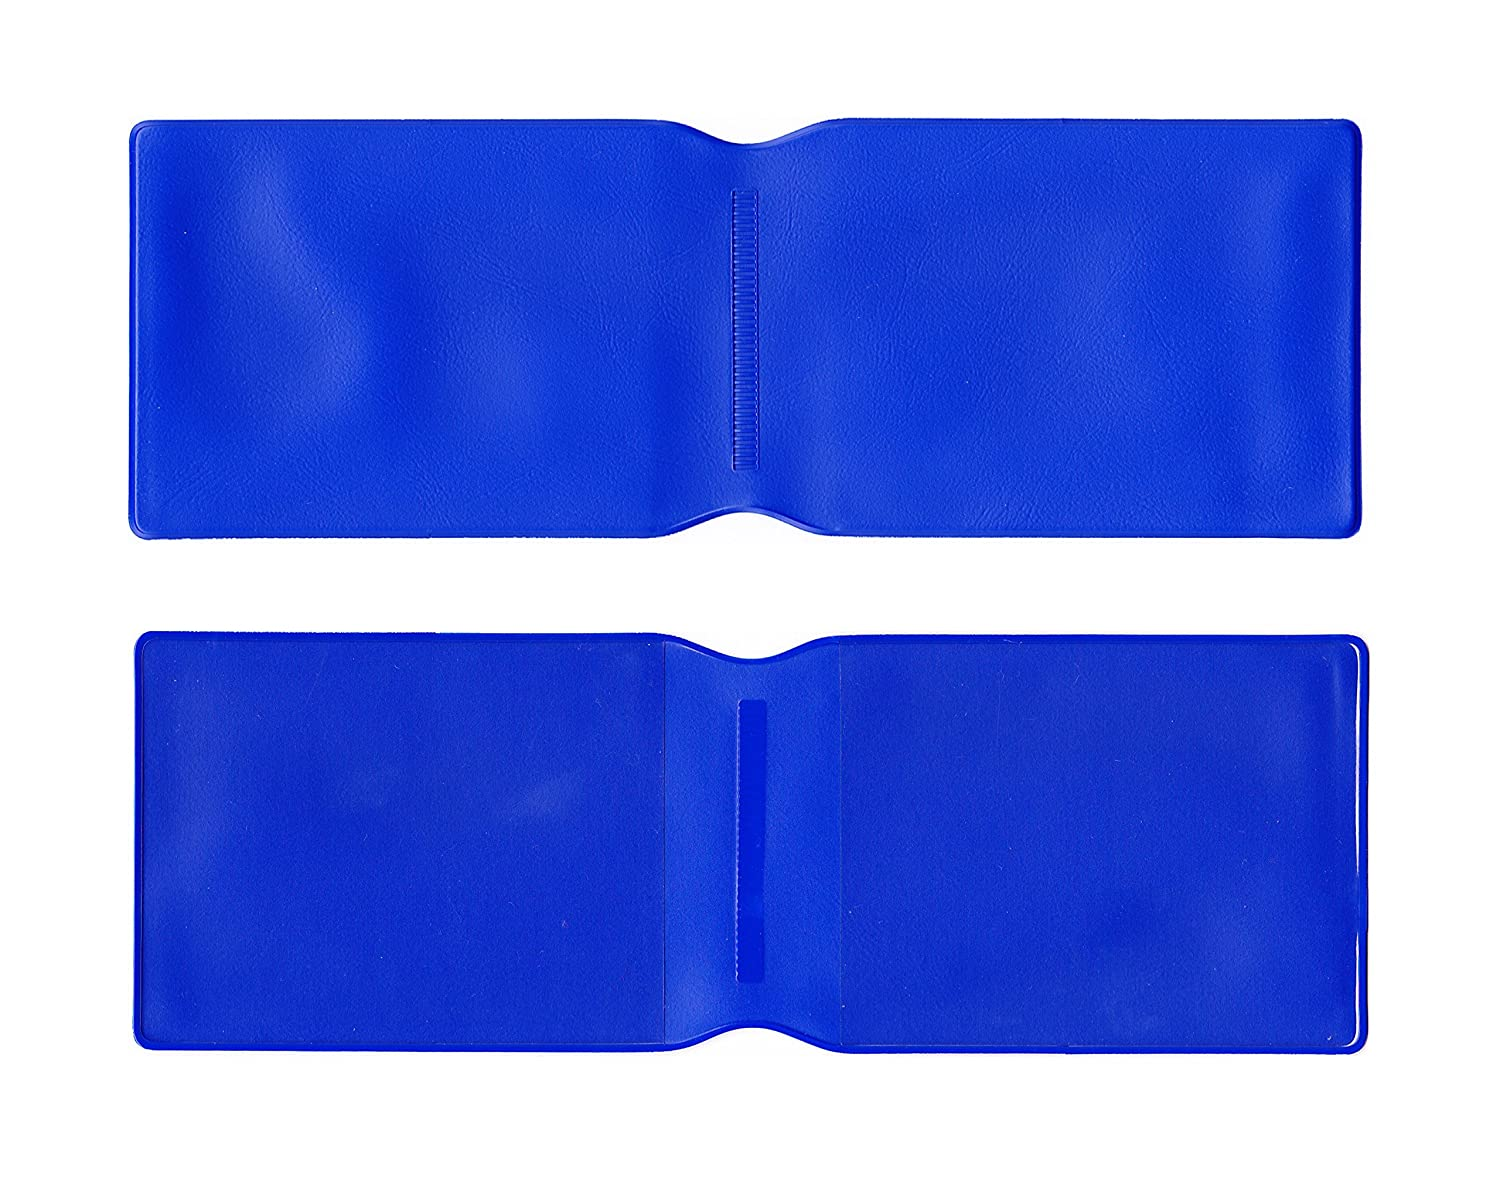 1 x Dark Blue Plastic Oyster Card Wallet/Credit Card Holder/ID Card Wallet/Business Card Holder/Travel Pass Cover - MADE IN THE UK